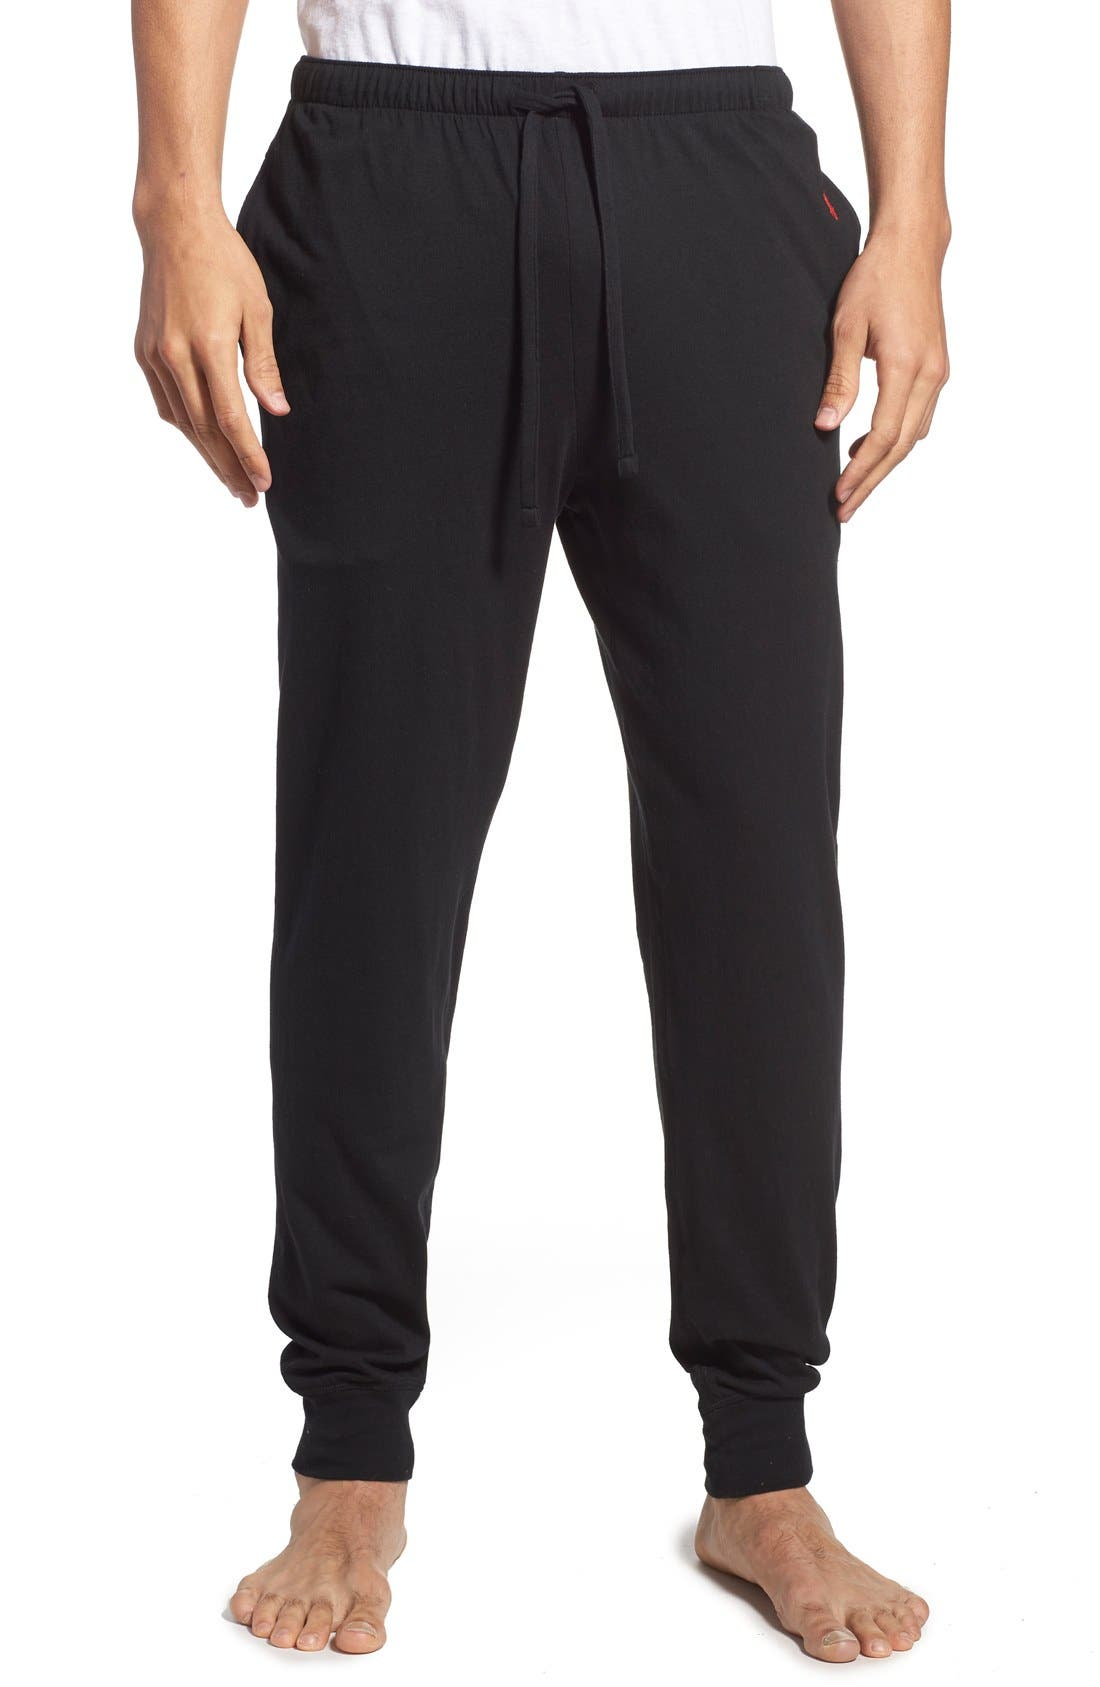 Polo Ralph Lauren Relaxed Fit Cotton Knit Lounge Jogger Pants